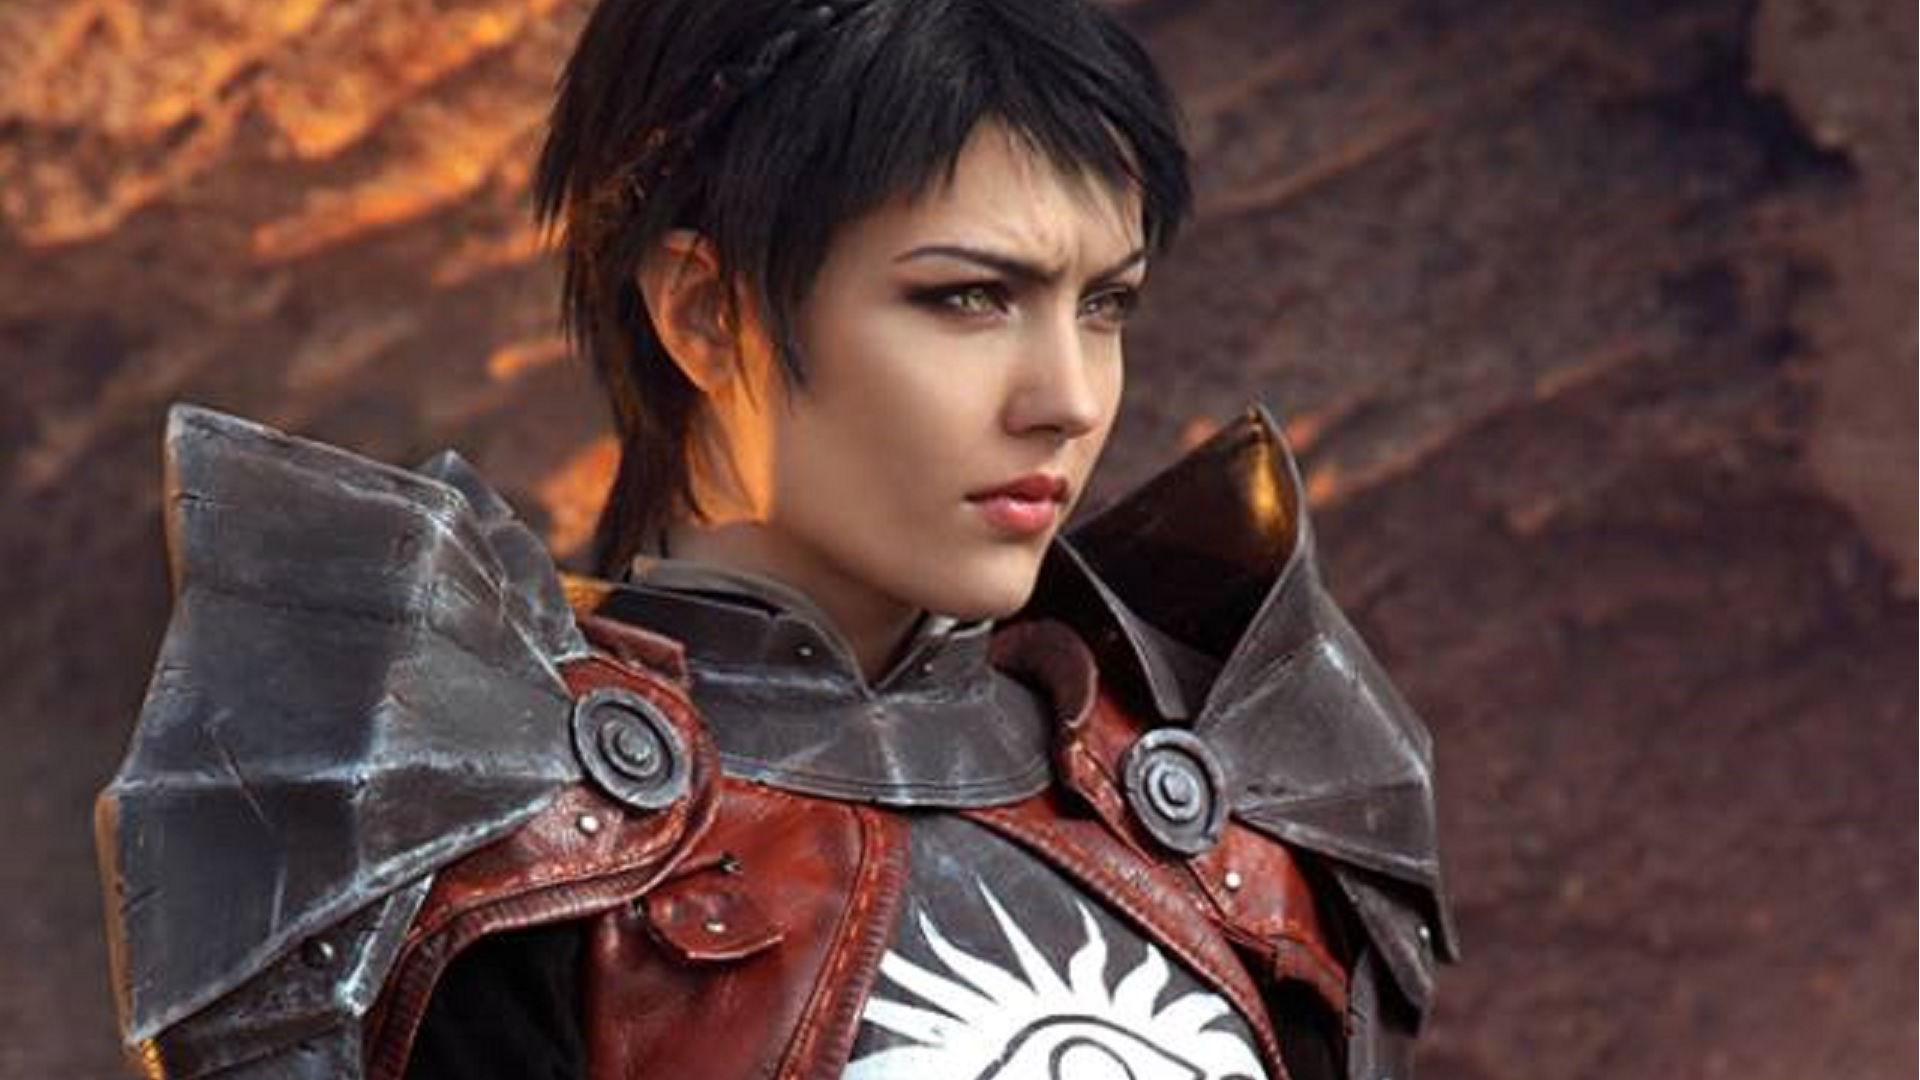 This Cosplayer Is Literally Cassandra Pentaghast From DRAGON AGE GameTyrant